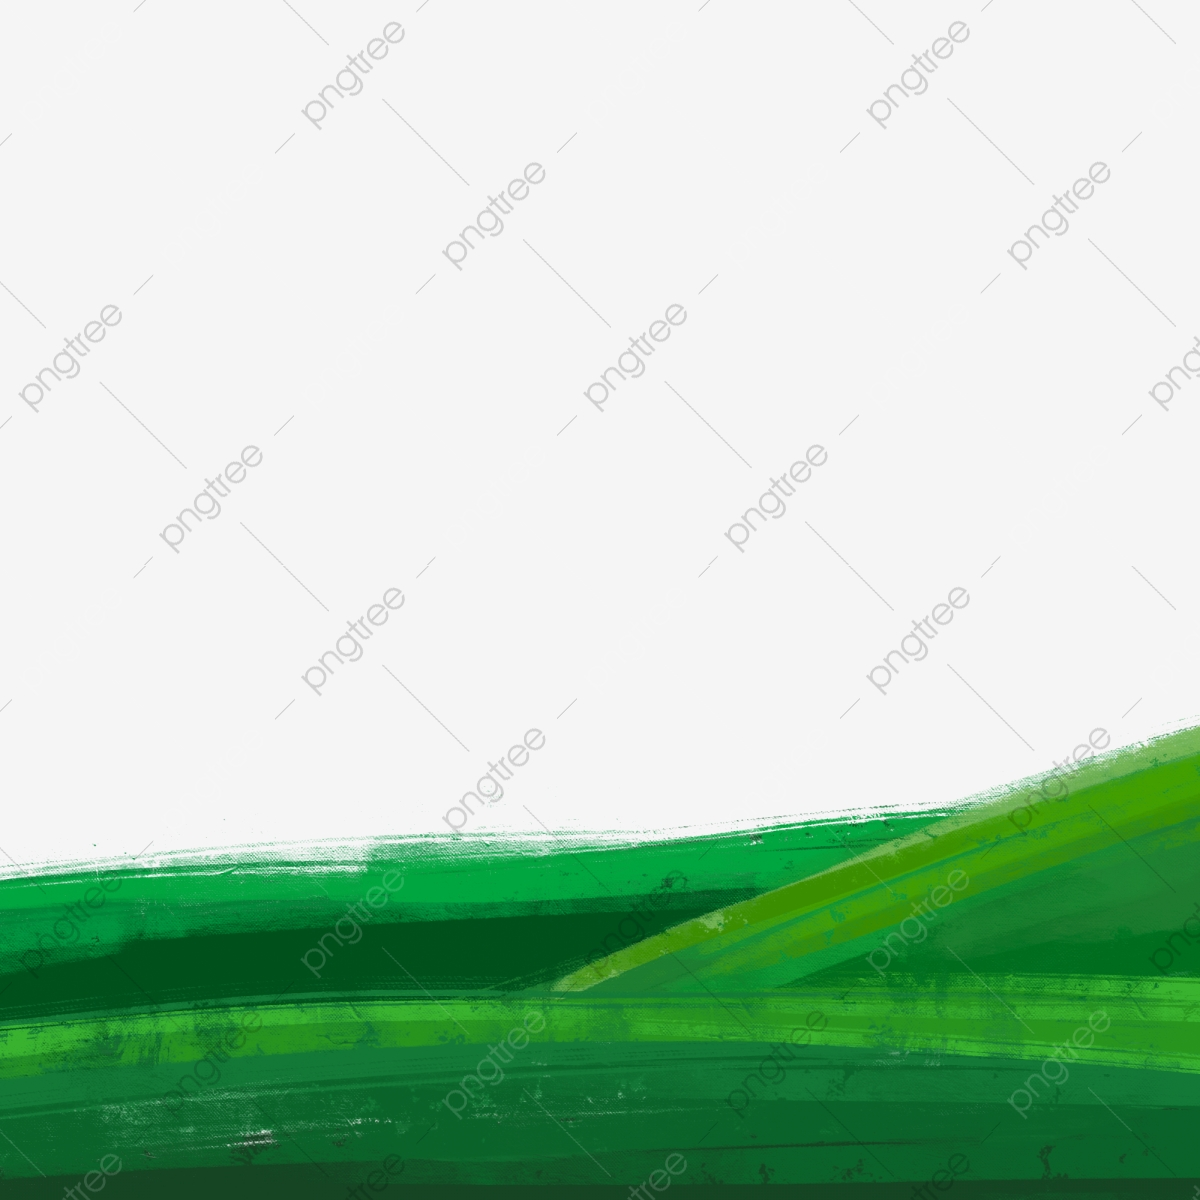 Cartoon Green Grass Download Plain Grassland Prairie Png Transparent Clipart Image And Psd File For Free Download